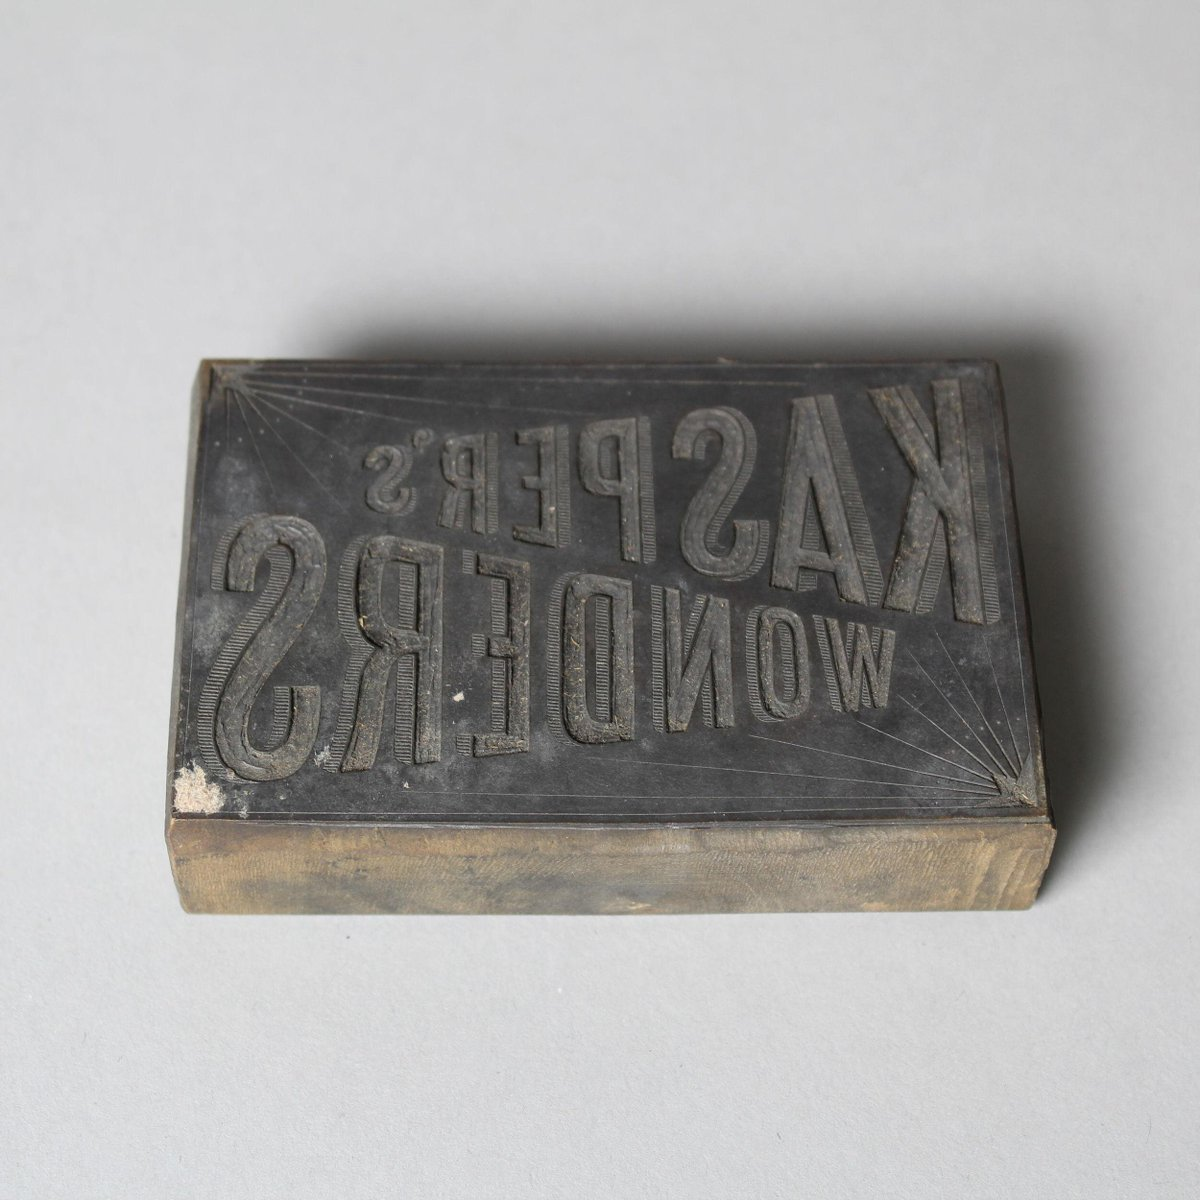 From the V&A collection: S.1213-1982 Printing block  Blythe House  In store https://t.co/N0JThyNpRU #art #design #museums https://t.co/A4uLvBMwkF